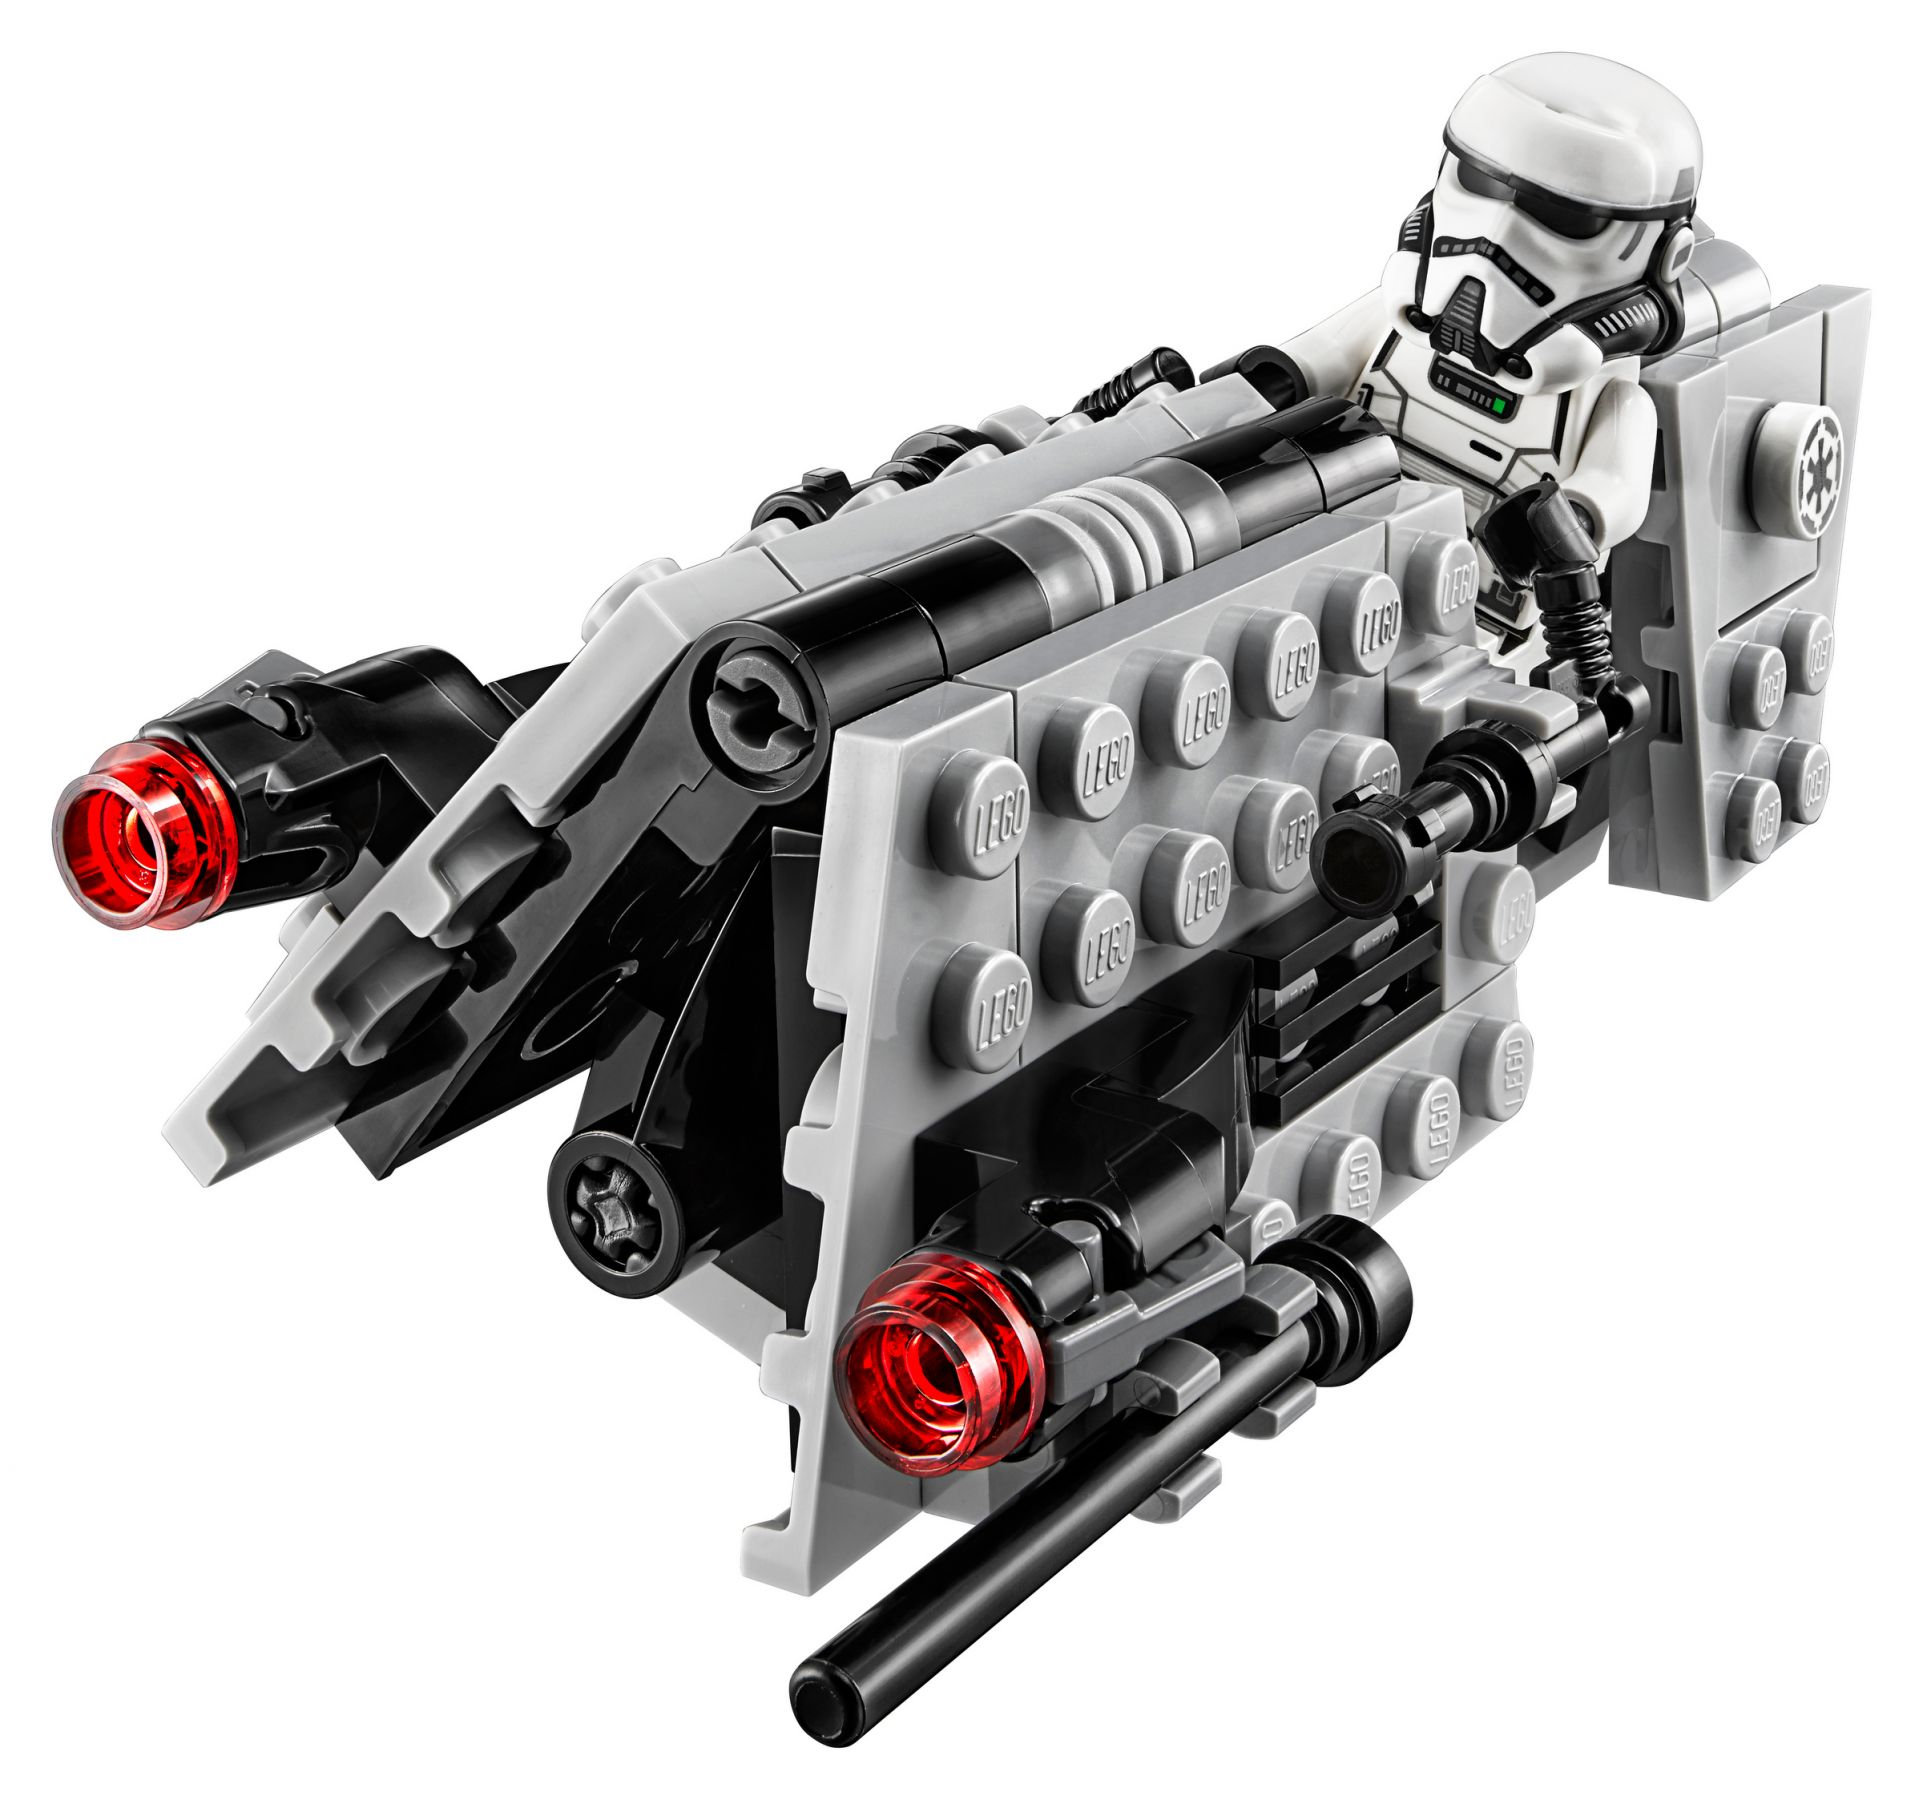 LEGO Star Wars 75207 Imperial Patrol Battle Pack LEGO_75207_alt2.jpg